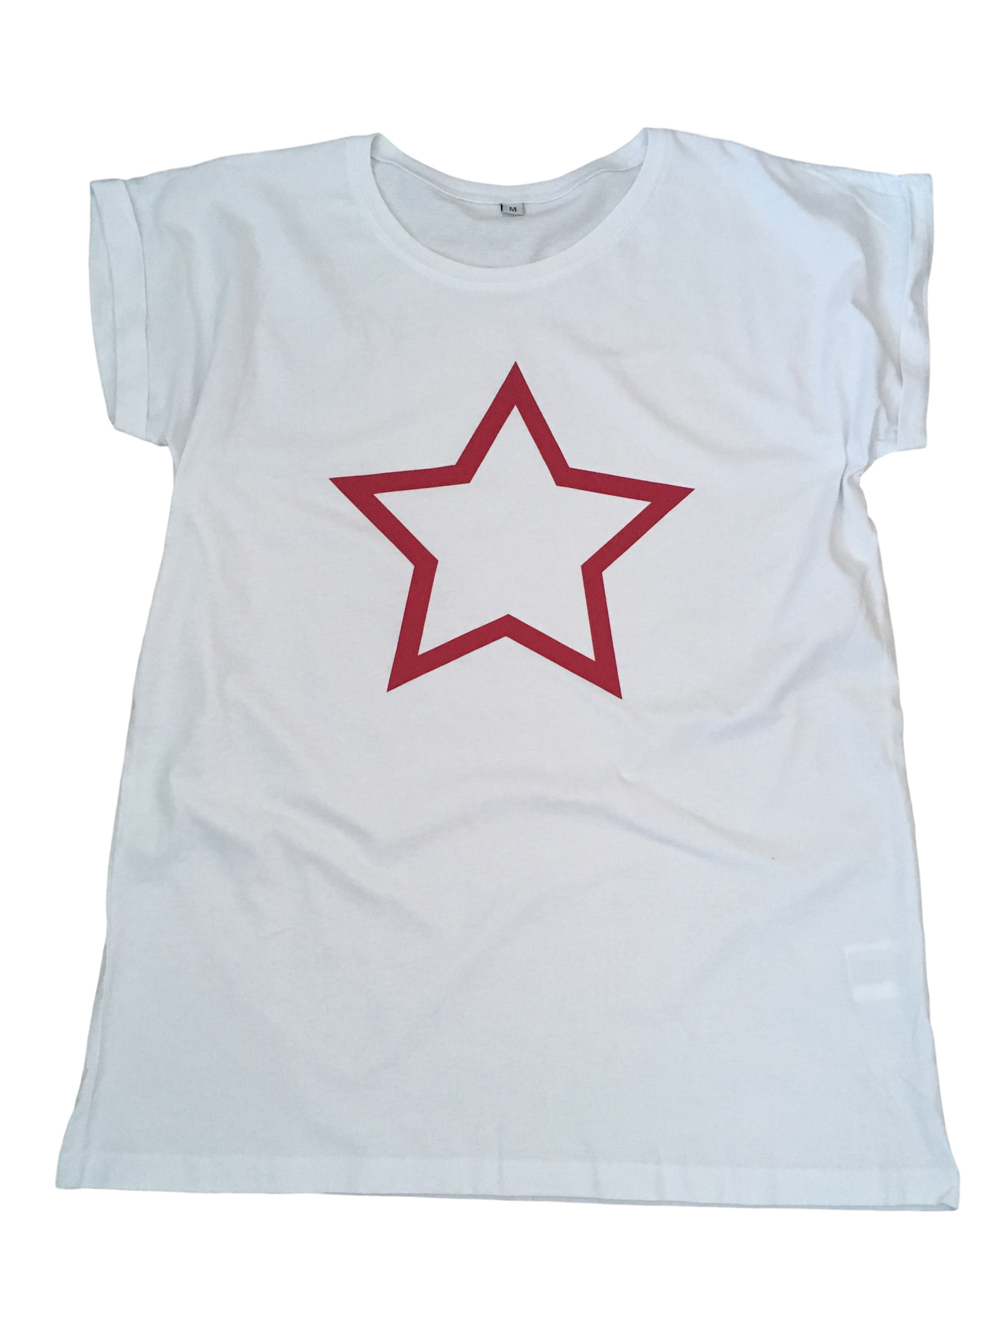 ADULT – White/pink Star T-shirt – Medium